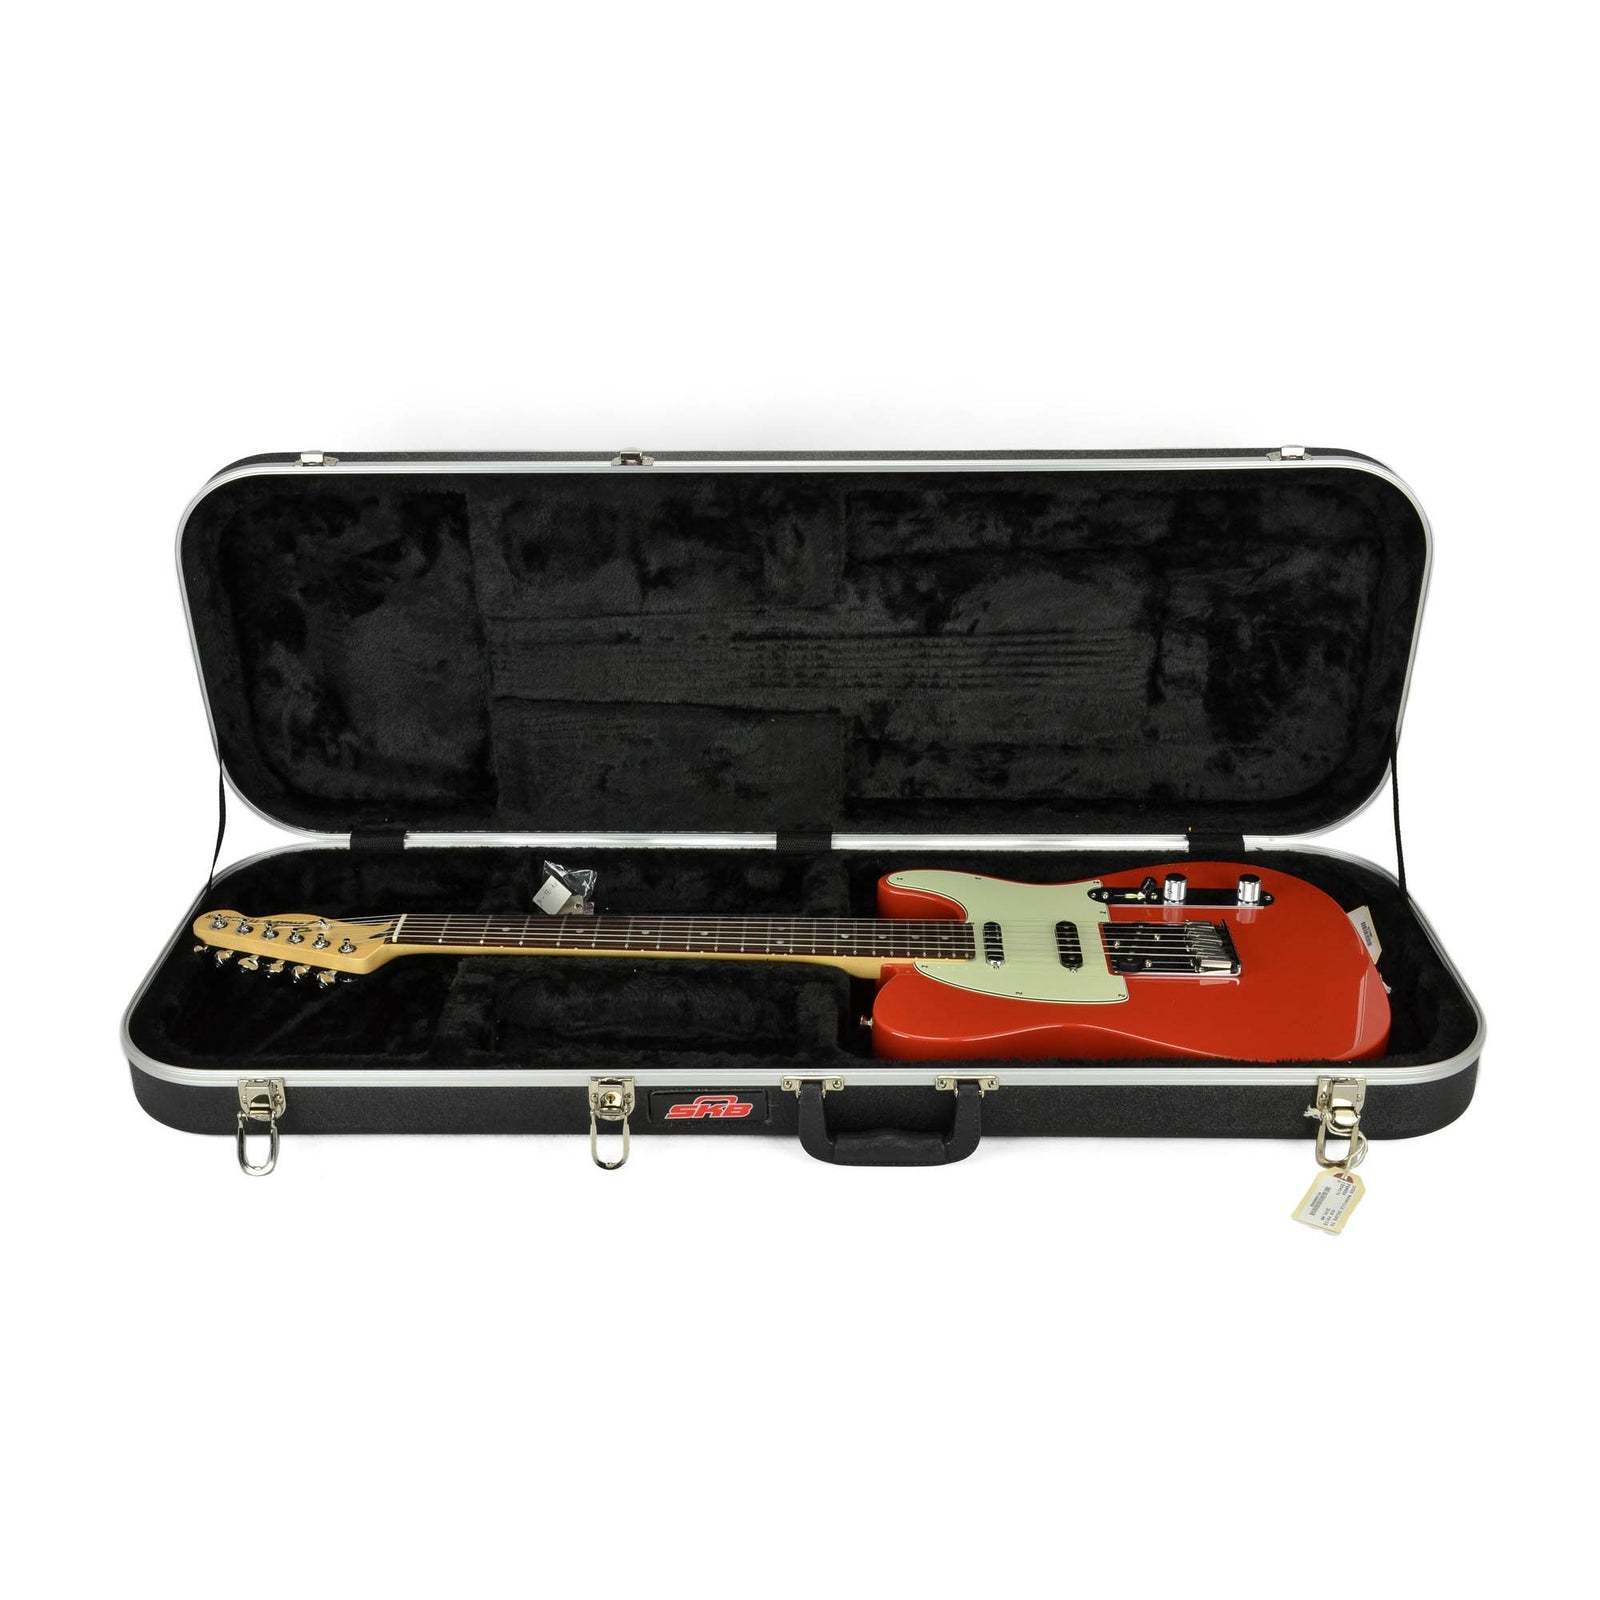 Fender Nashville Deluxe Telecaster With Case - Used